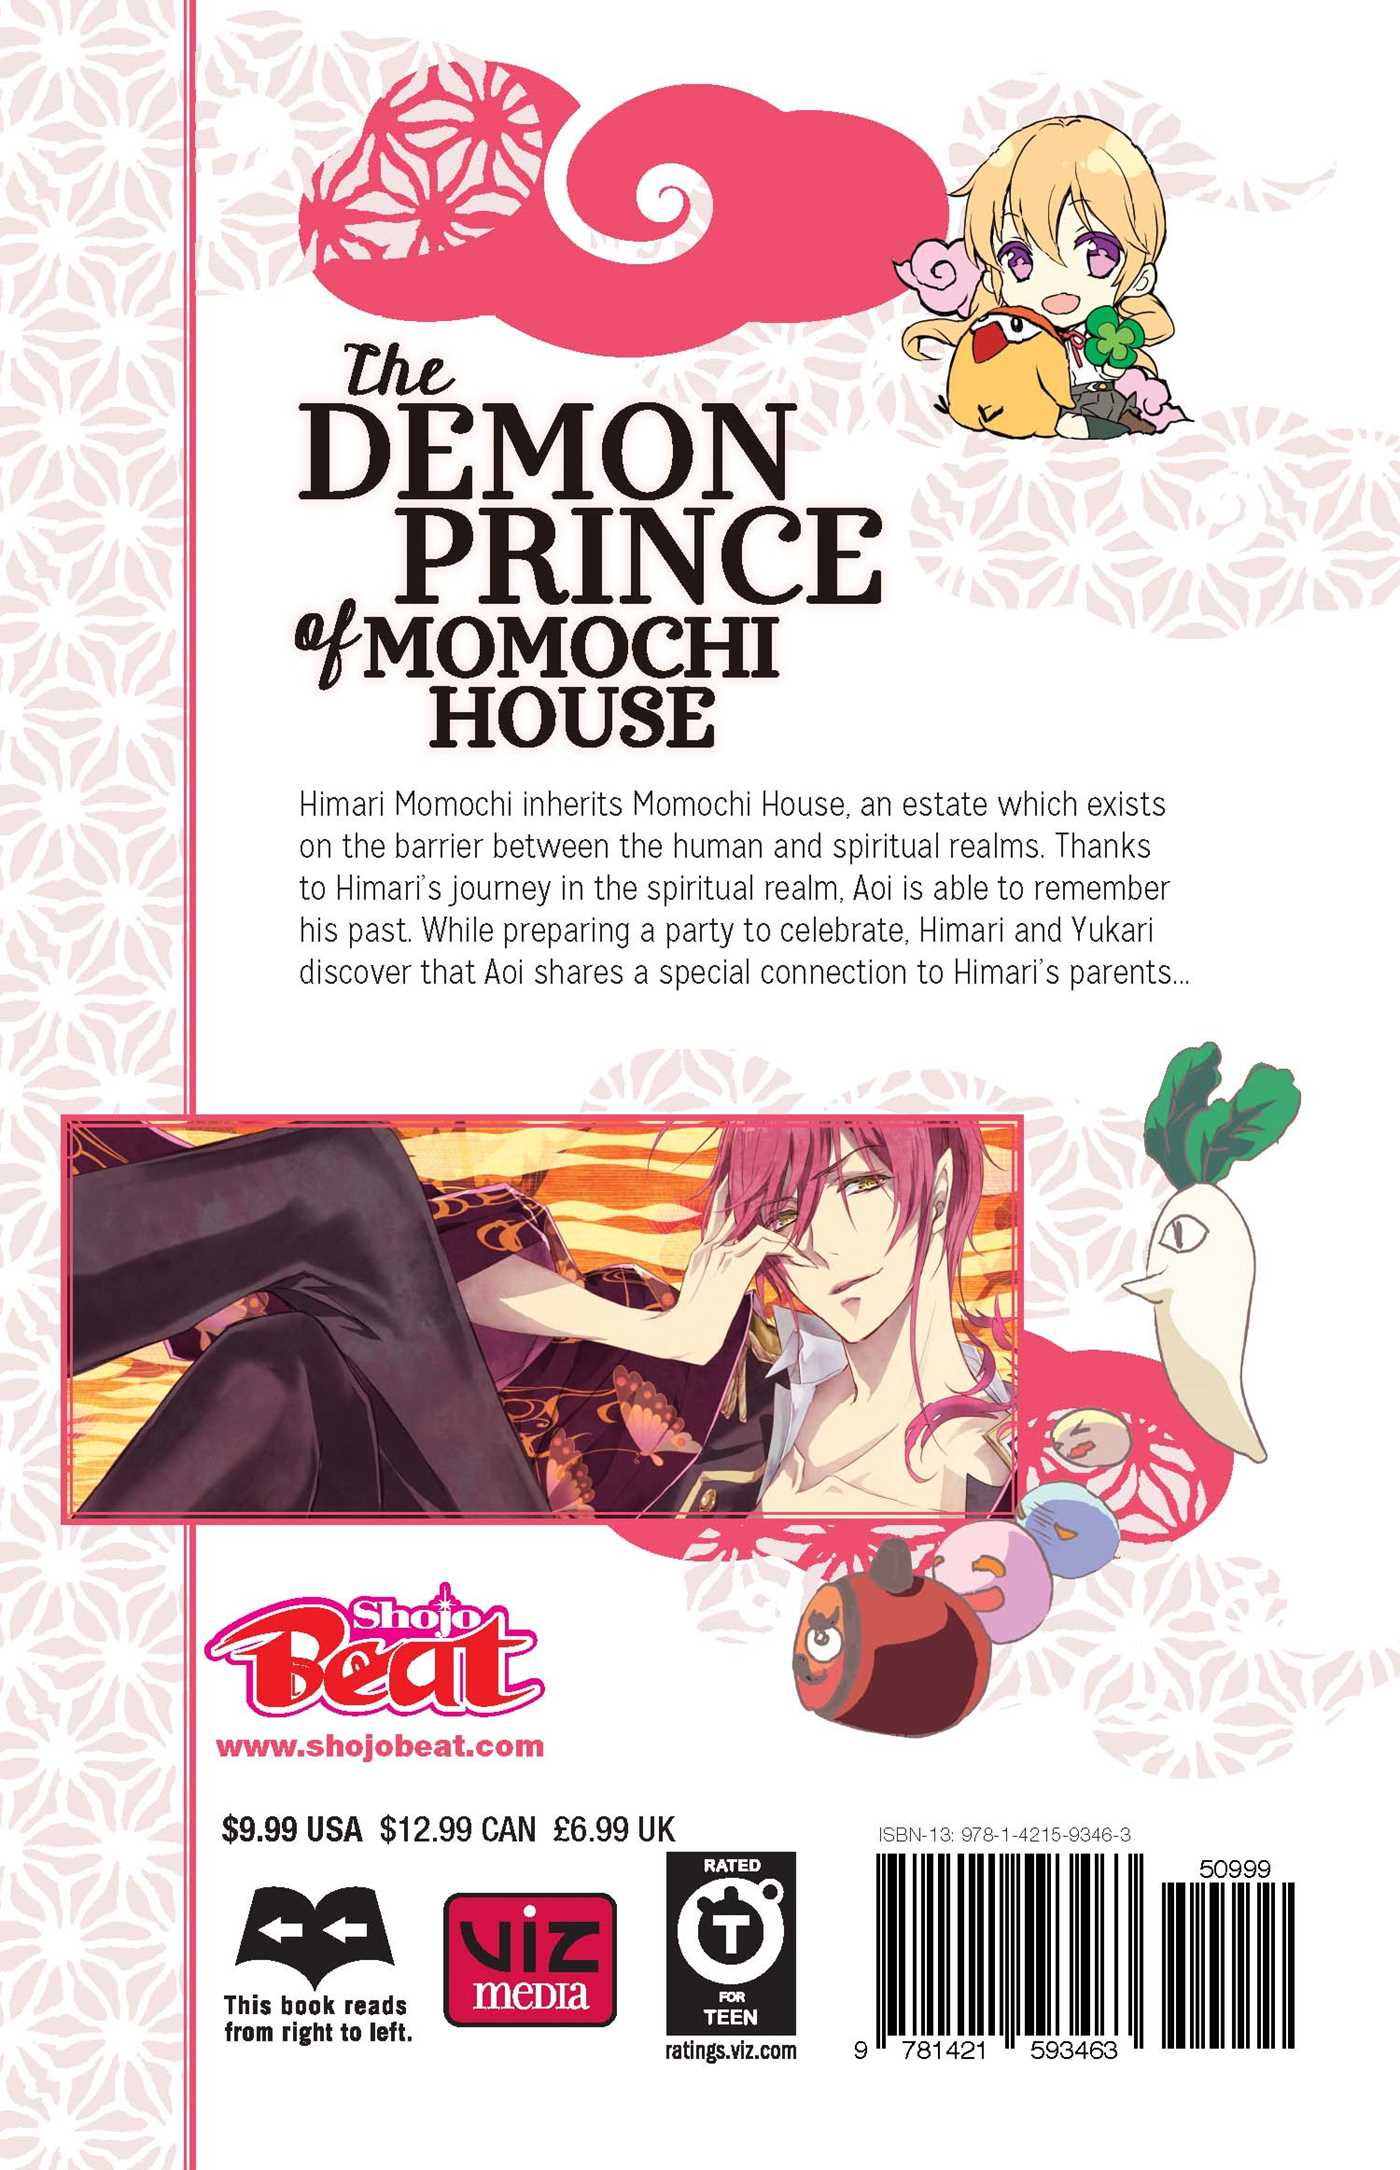 The Demon Prince of Momochi House Manga Volume 9